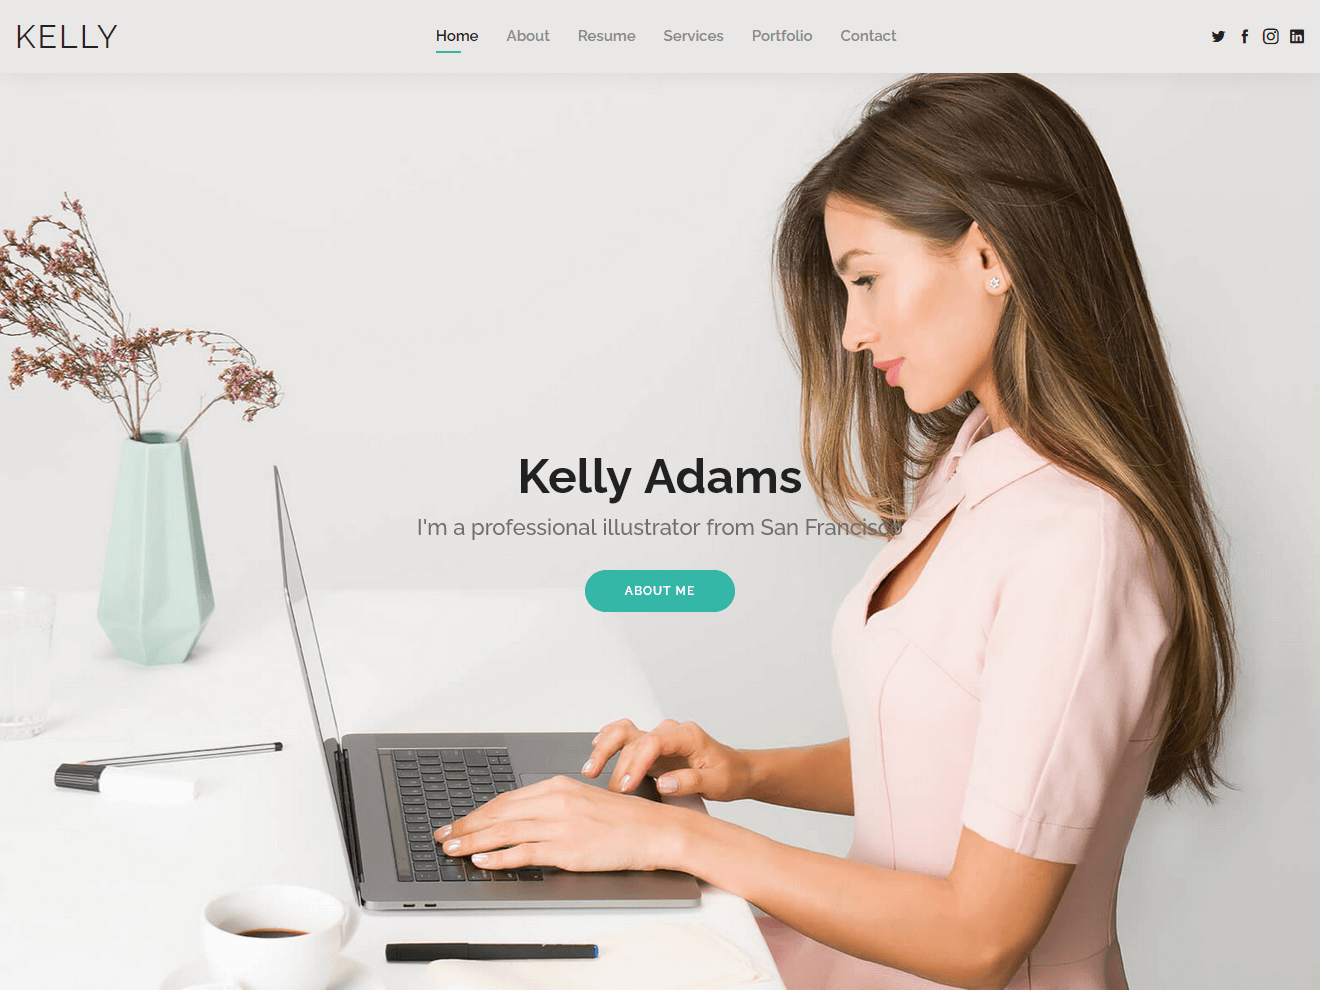 Kelly – Free Bootstrap CV Resume HTML Template Theme Demo